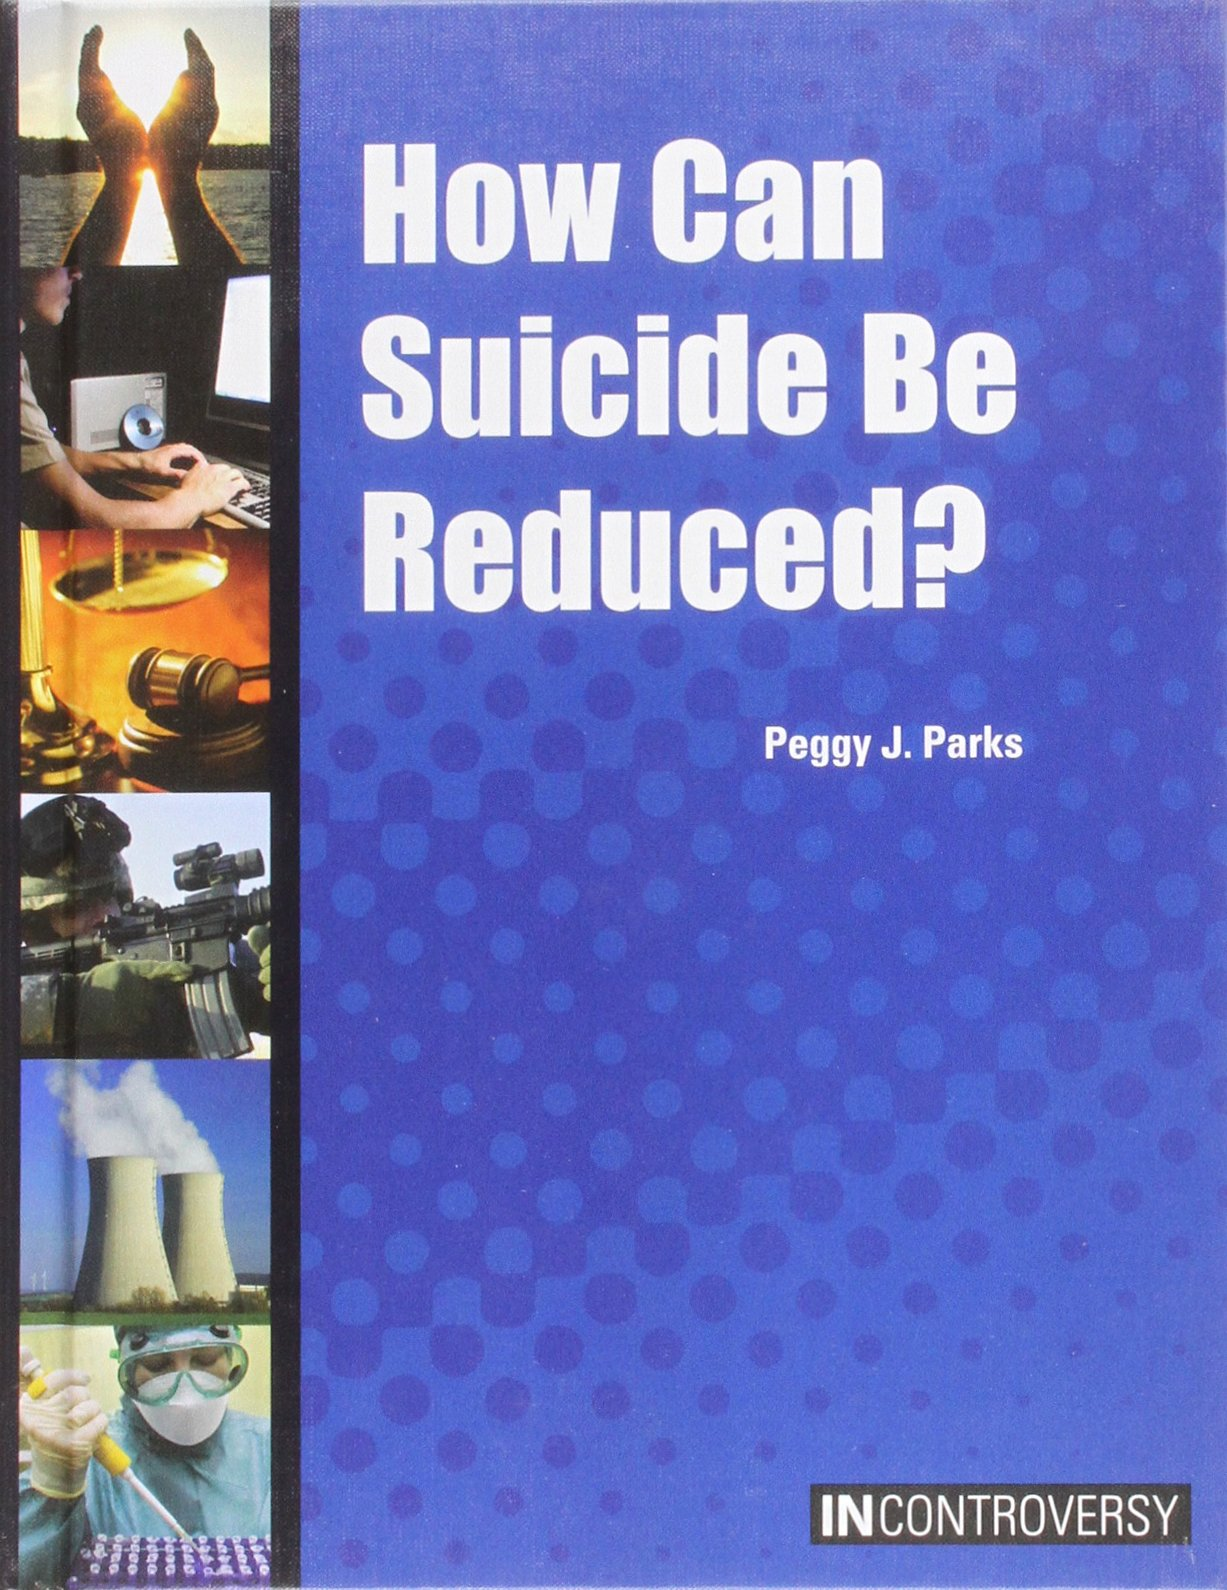 How Can Suicide Be Reduced? (In Controversy)